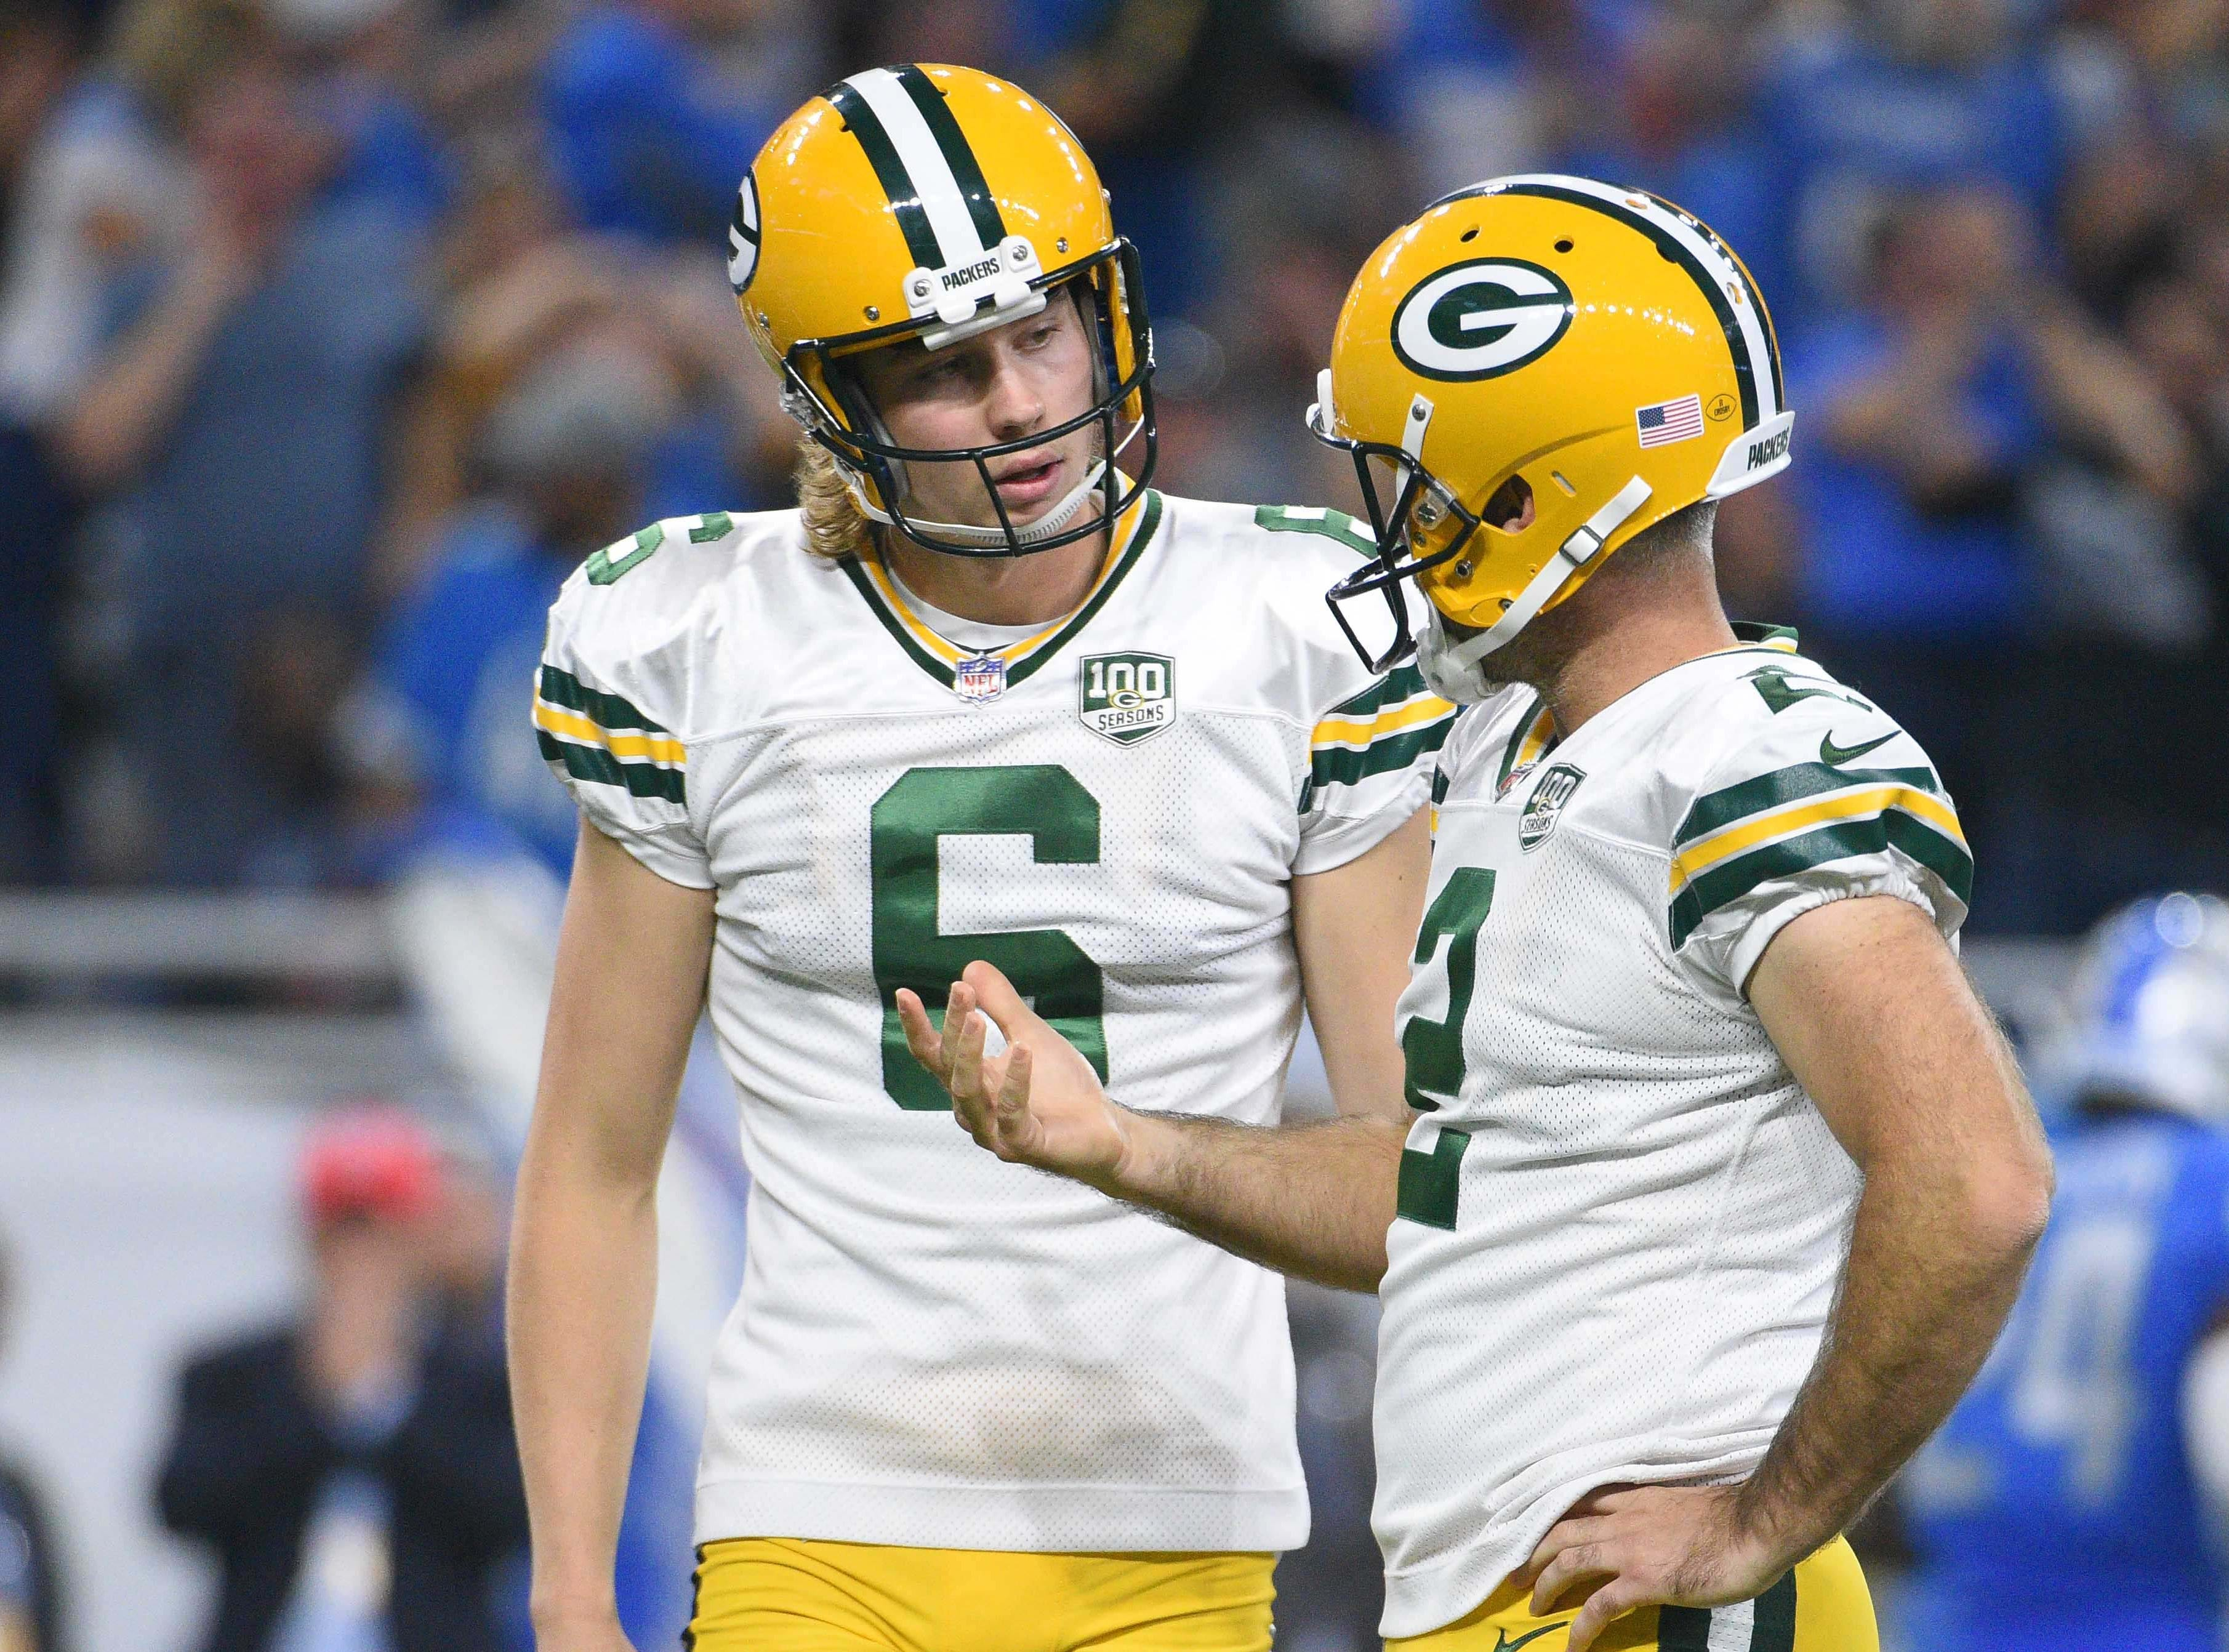 Oct 7, 2018; Detroit, MI, USA; Green Bay Packers kicker Mason Crosby (2) talks to punter JK Scott (6) after missing a field goal during the game against the Detroit Lions at Ford Field. Mandatory Credit: Tim Fuller-USA TODAY Sports